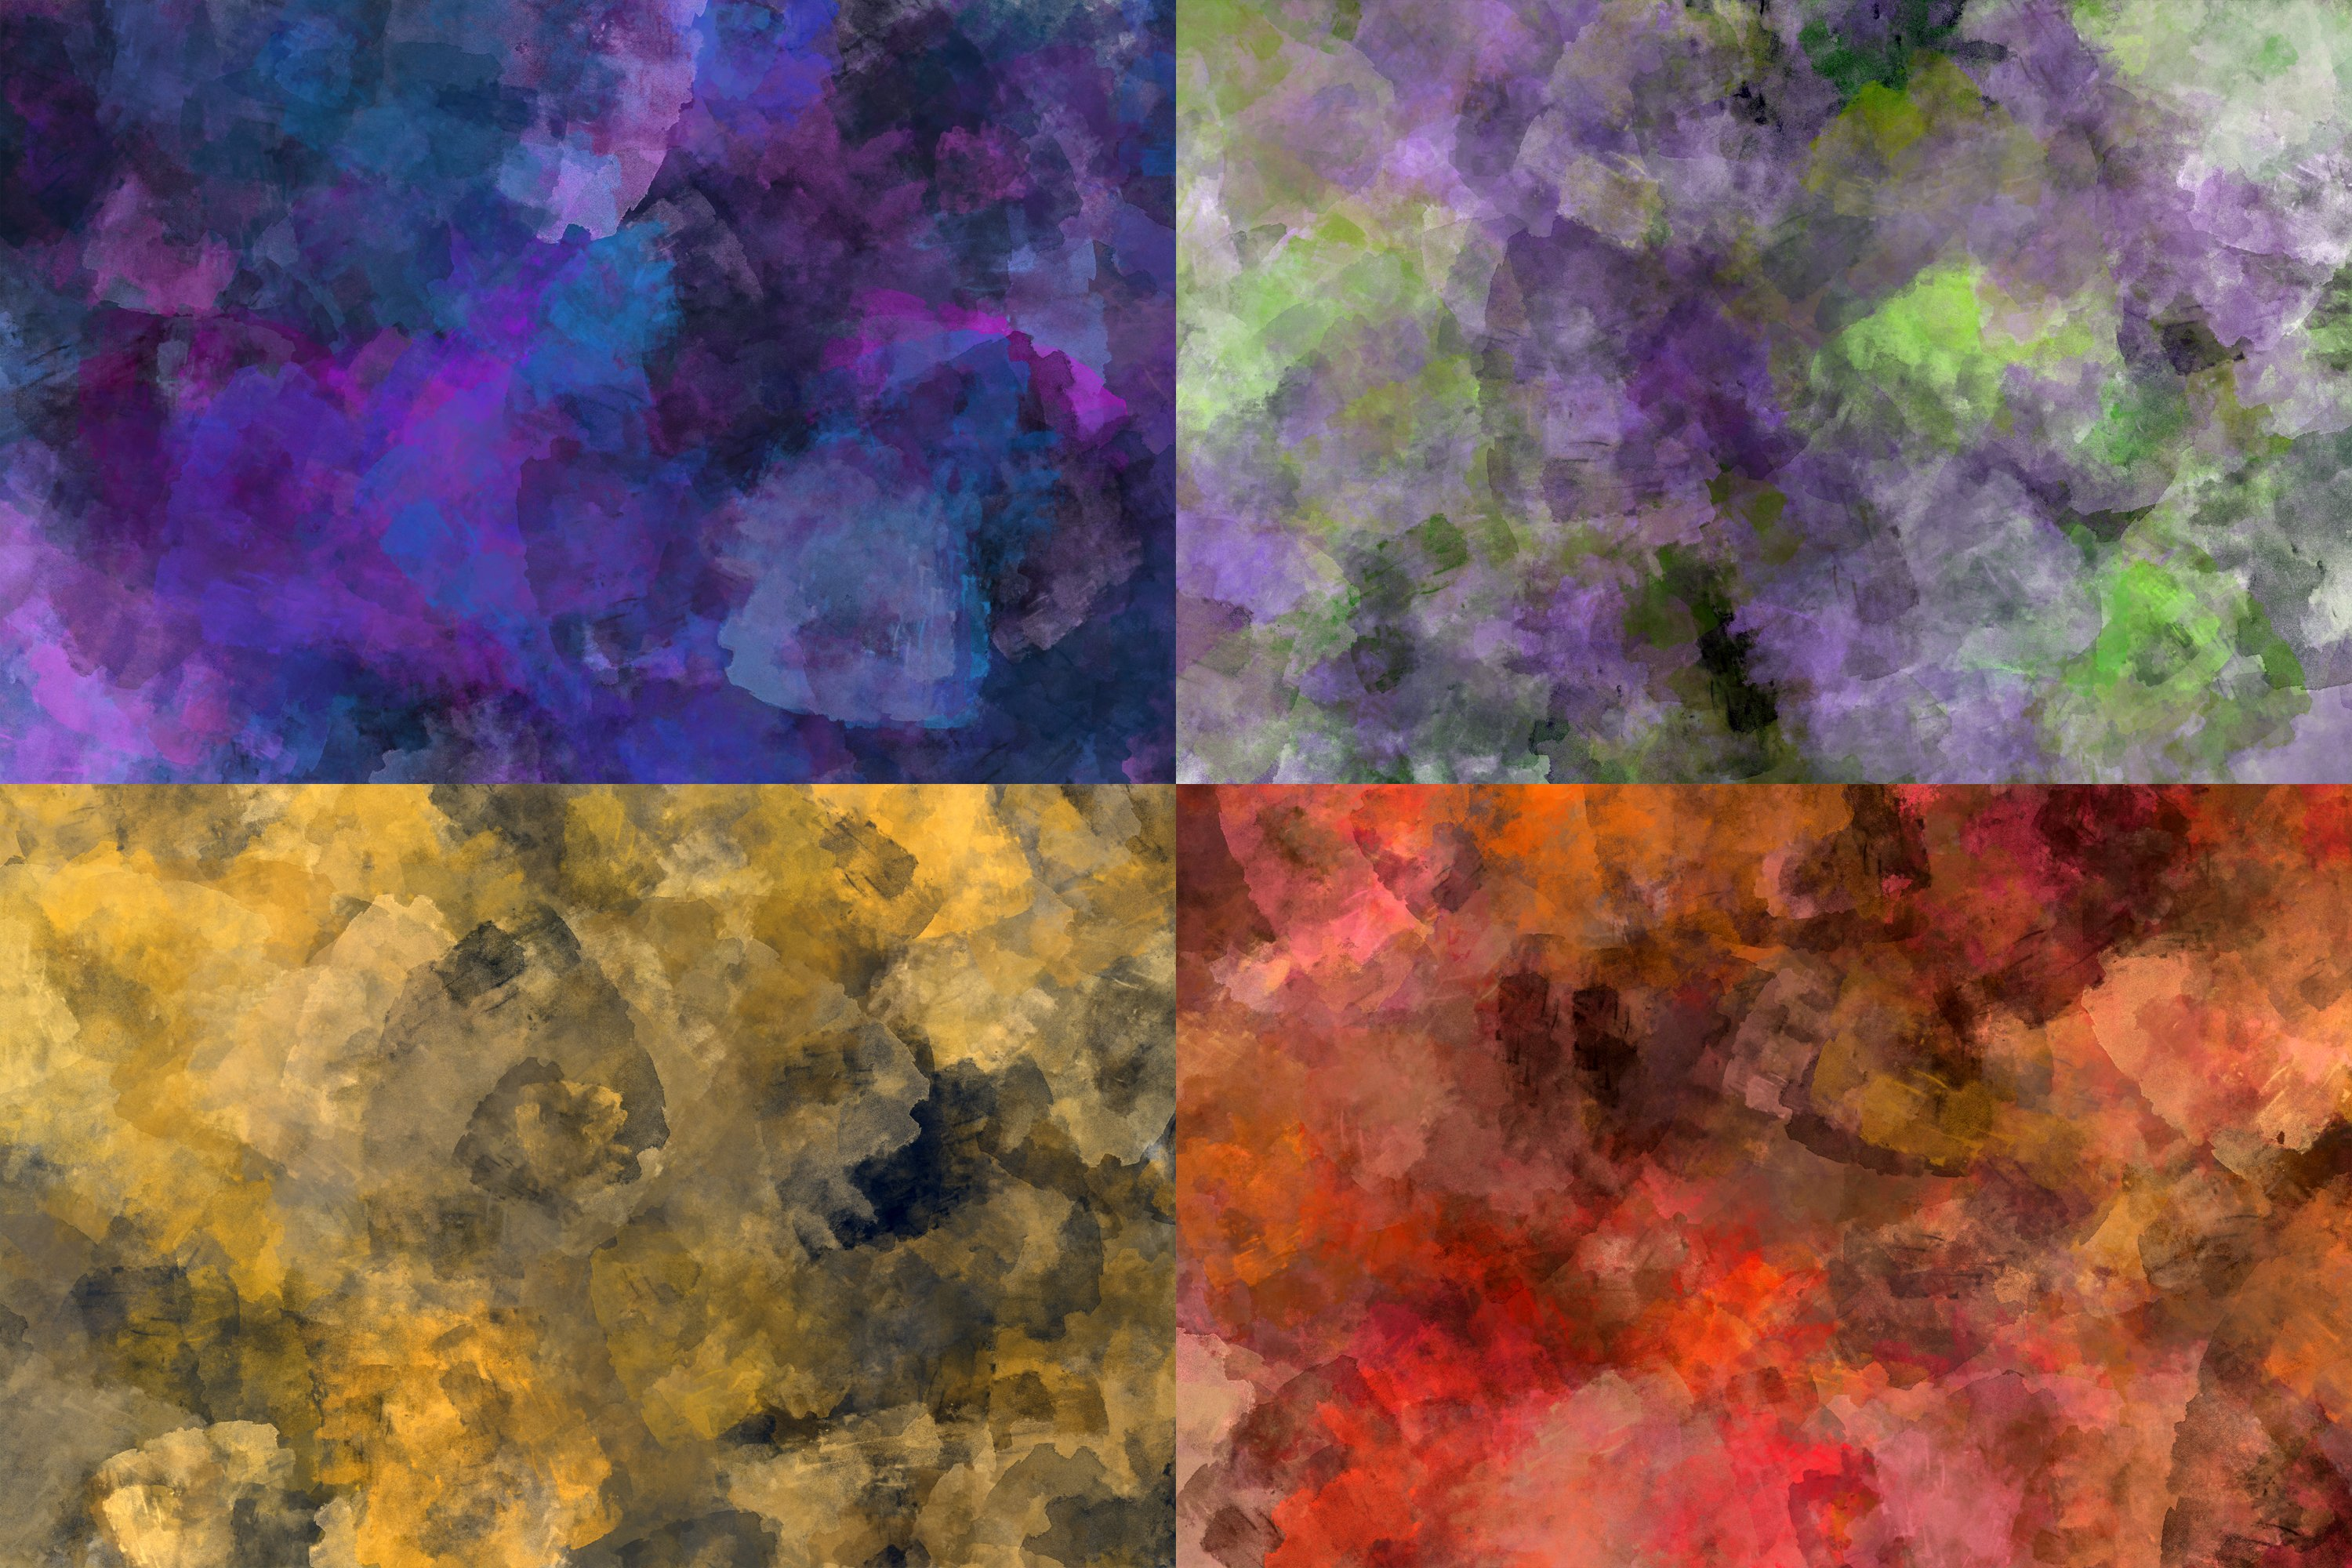 10 Grunge Watercolor Washes Textures example image 4